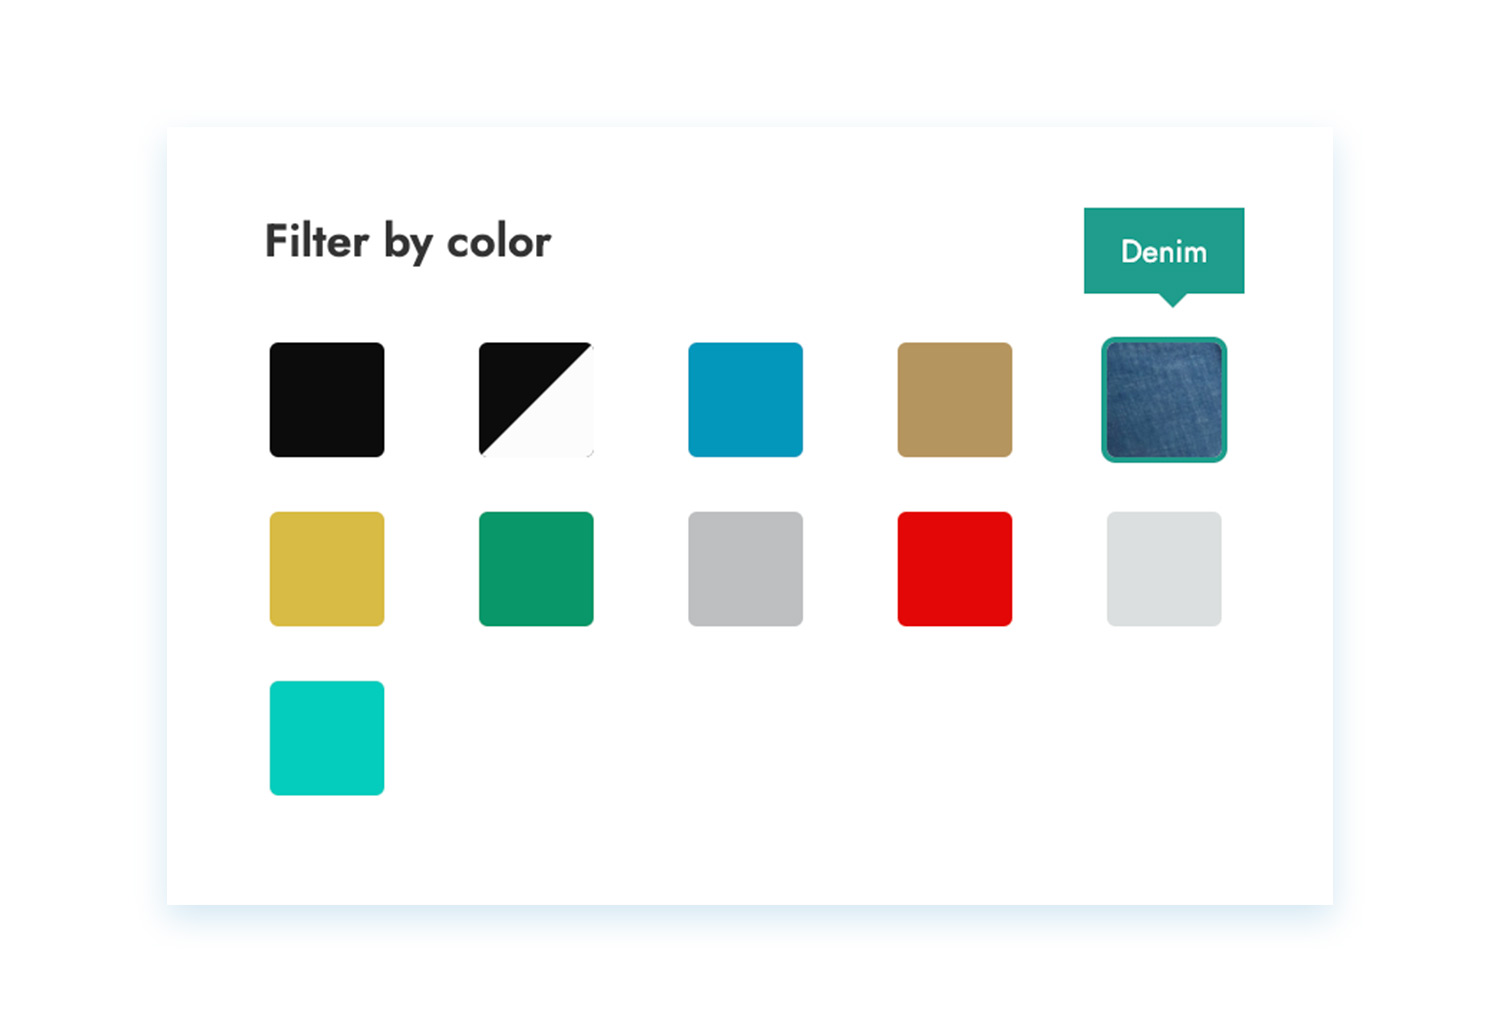 Filters color and image swatches